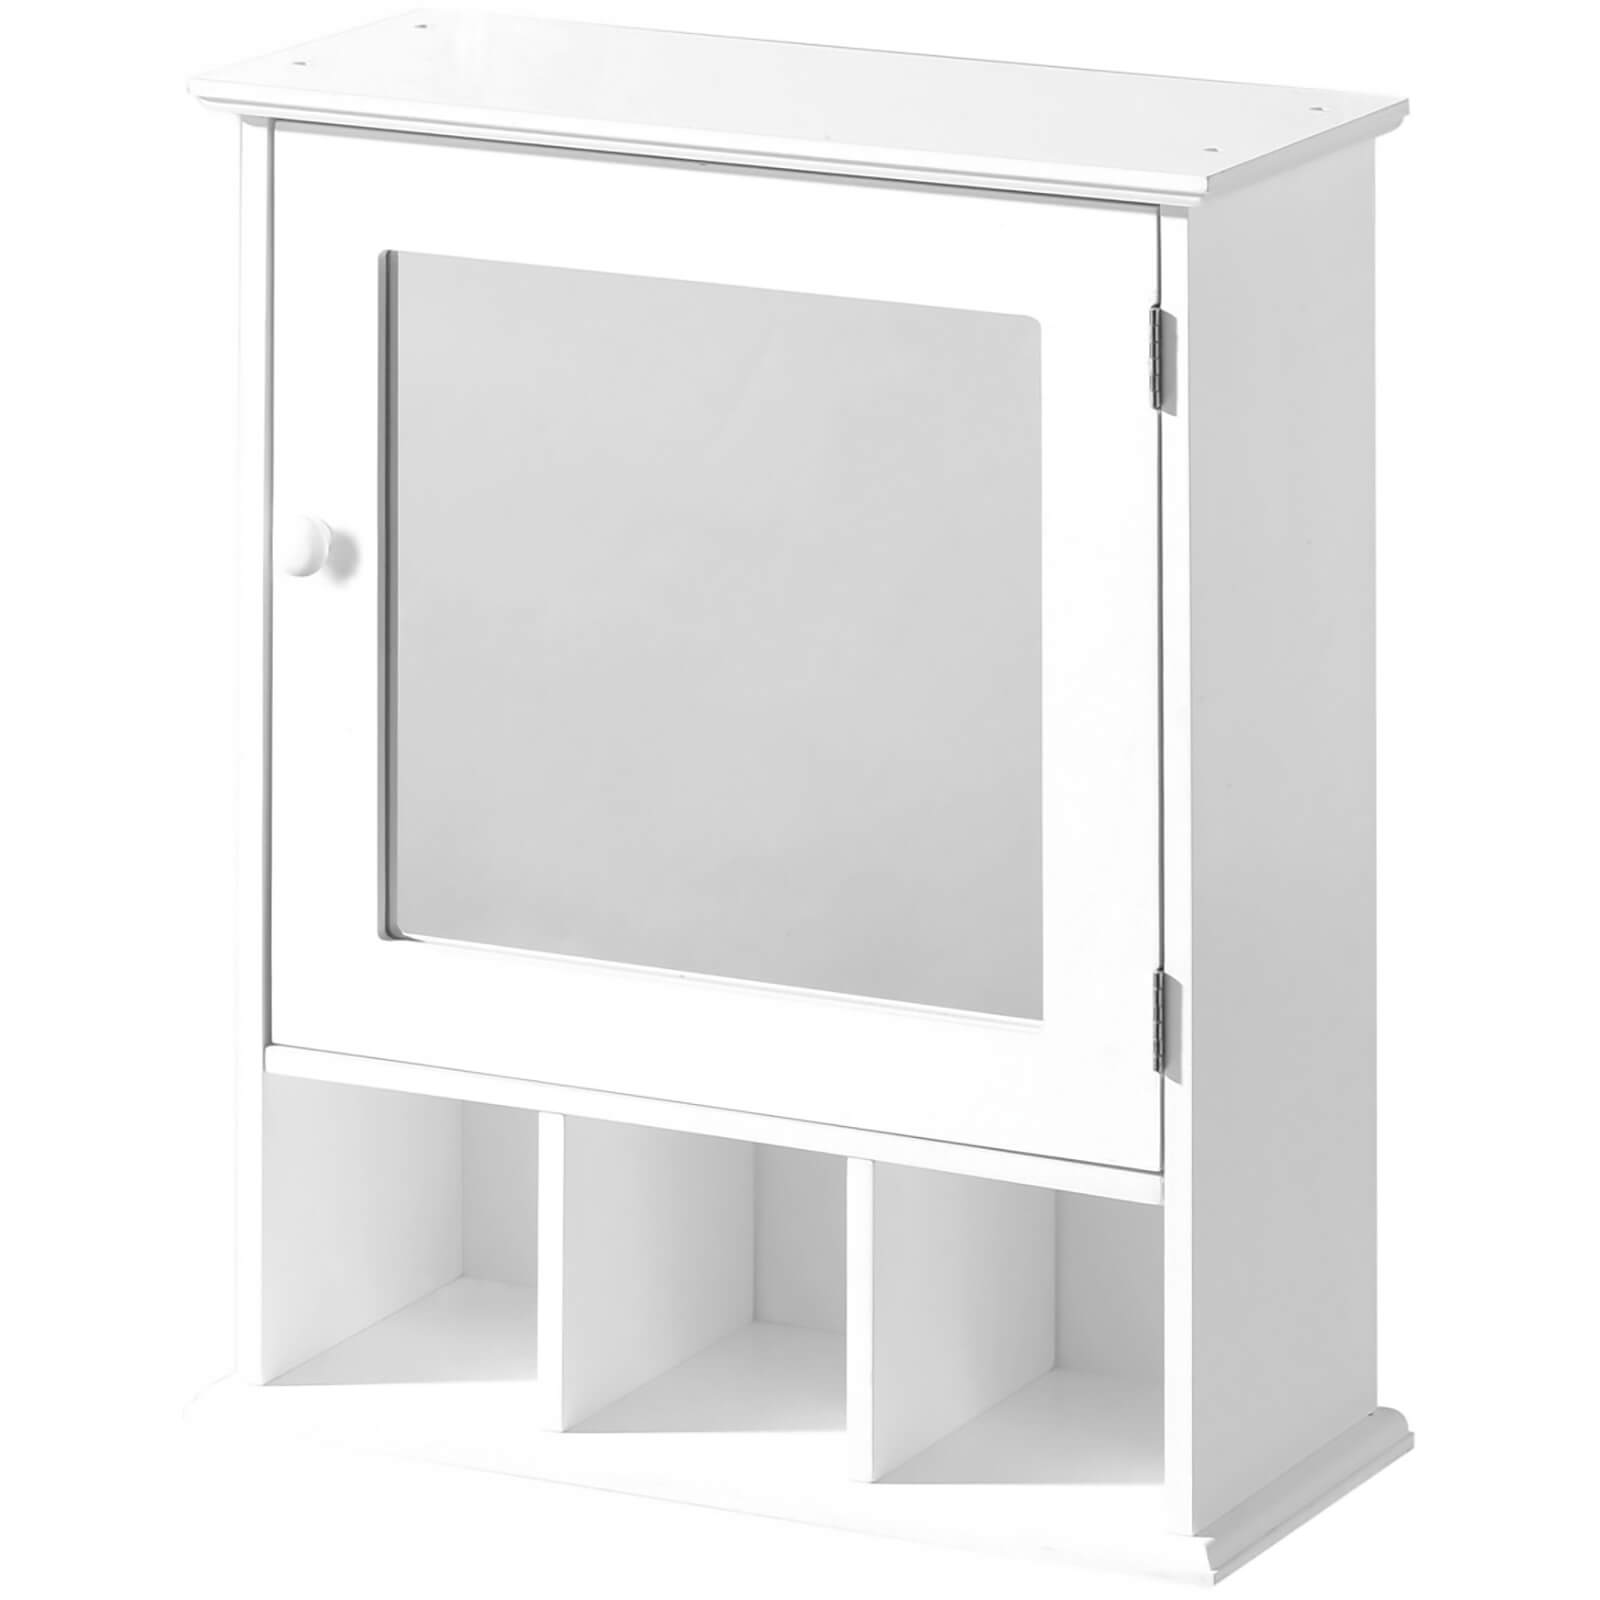 Bathroom Cabinet with Mirror - White Wood